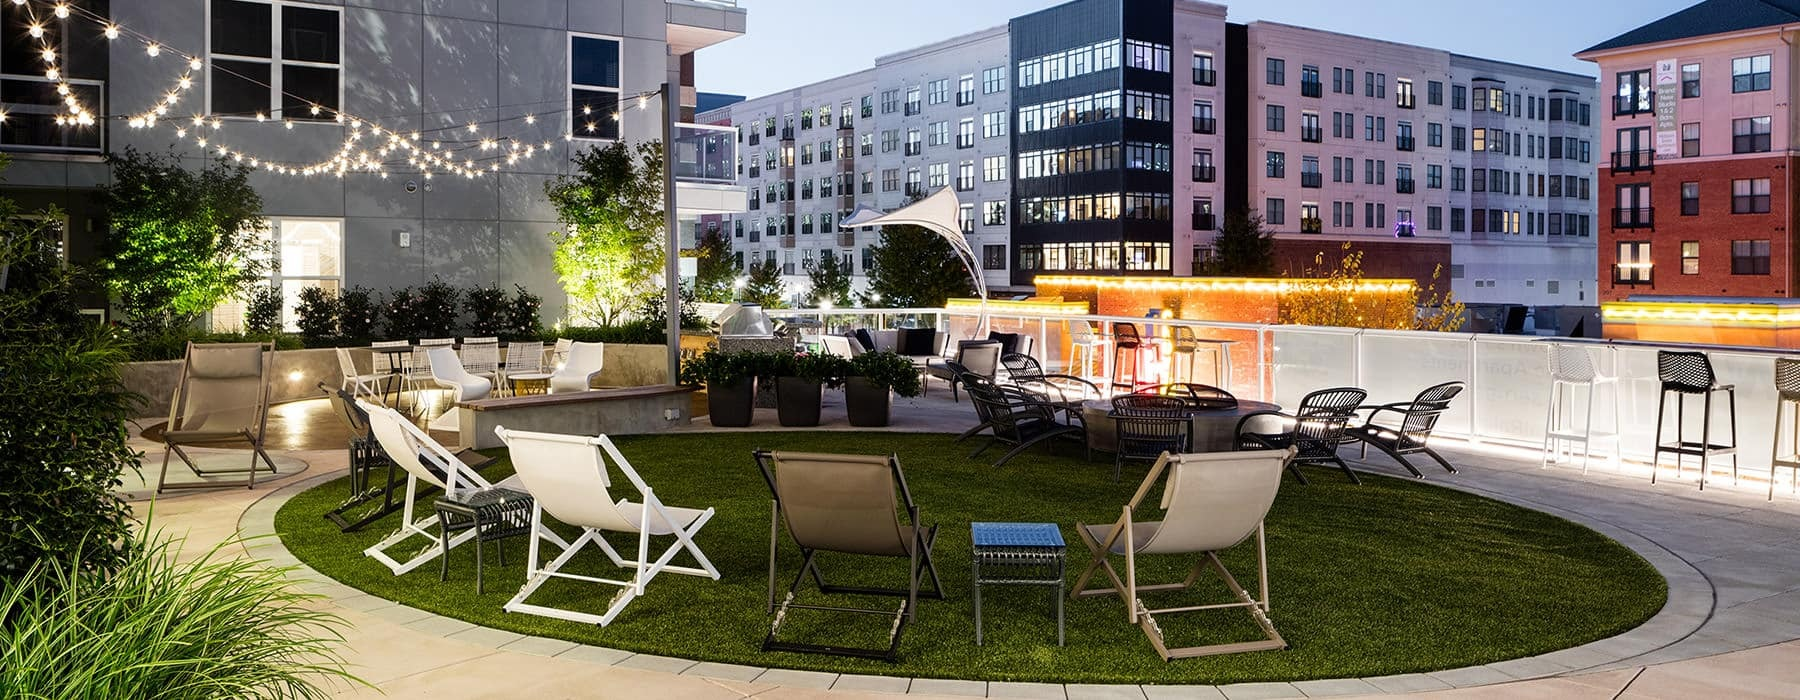 courtyard with turf lawns, seating arrangements, fire pits and open spaces